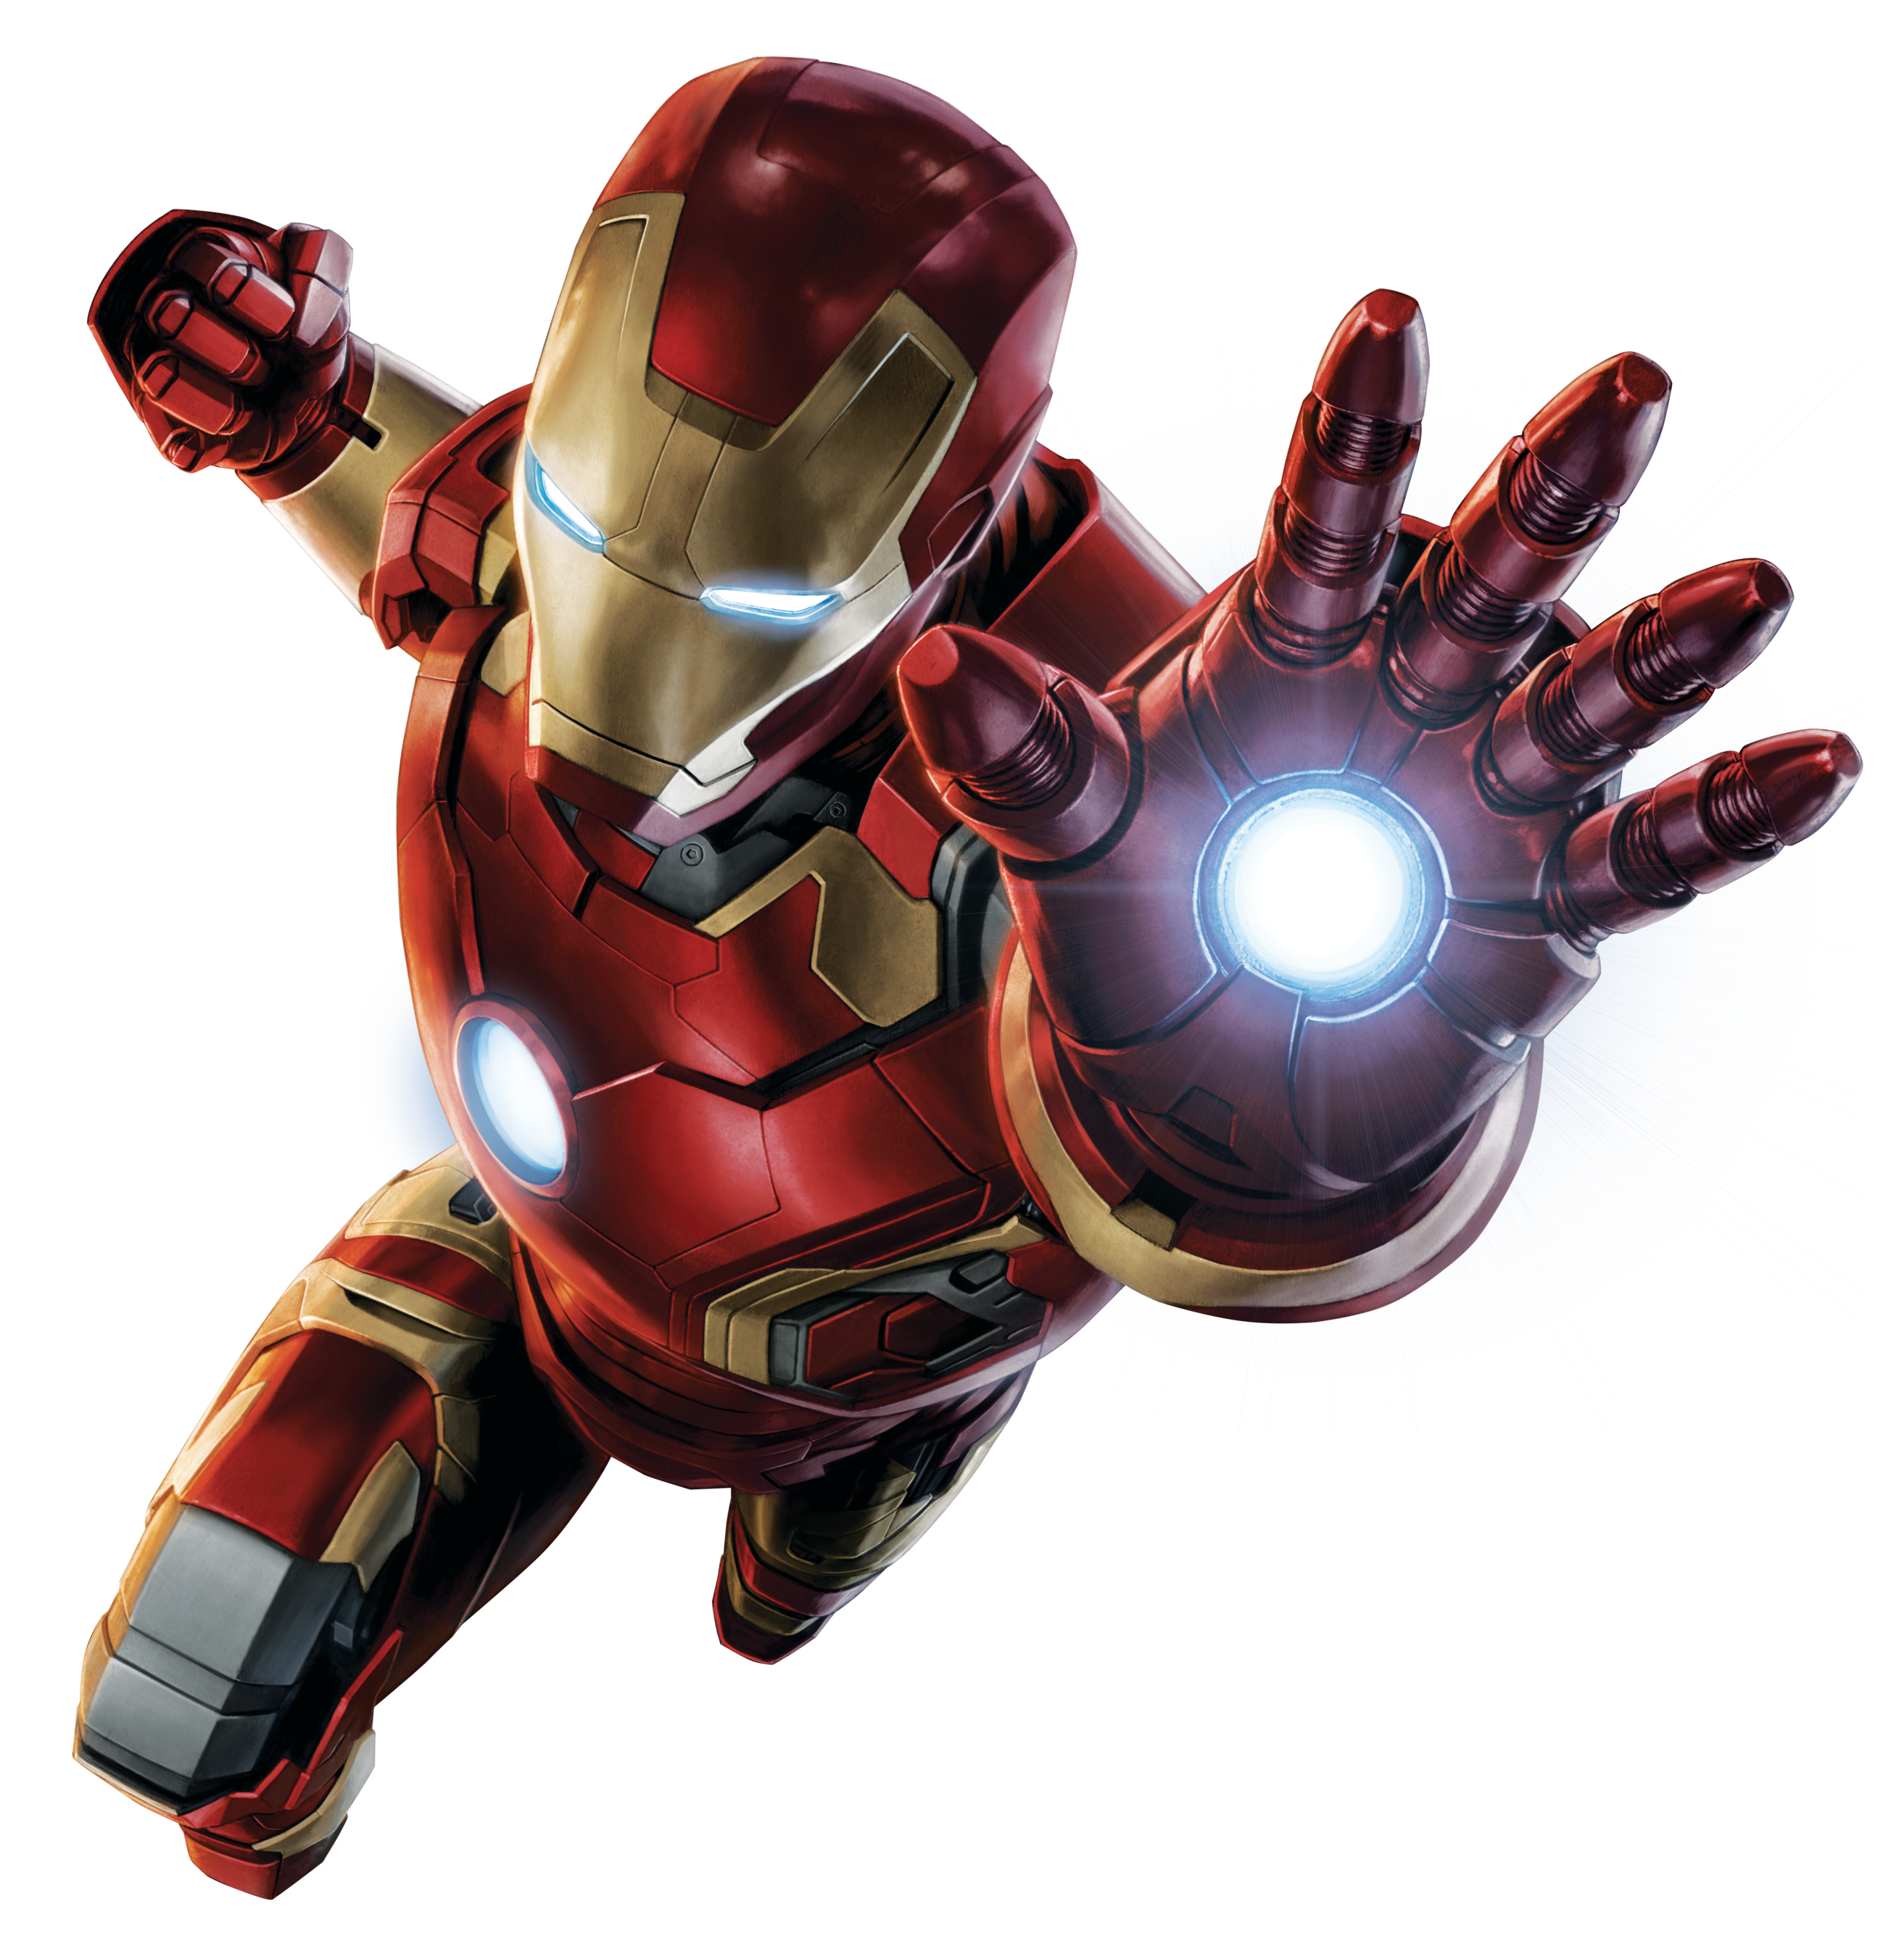 Iron Man Powerful Hit 119.91 Kb